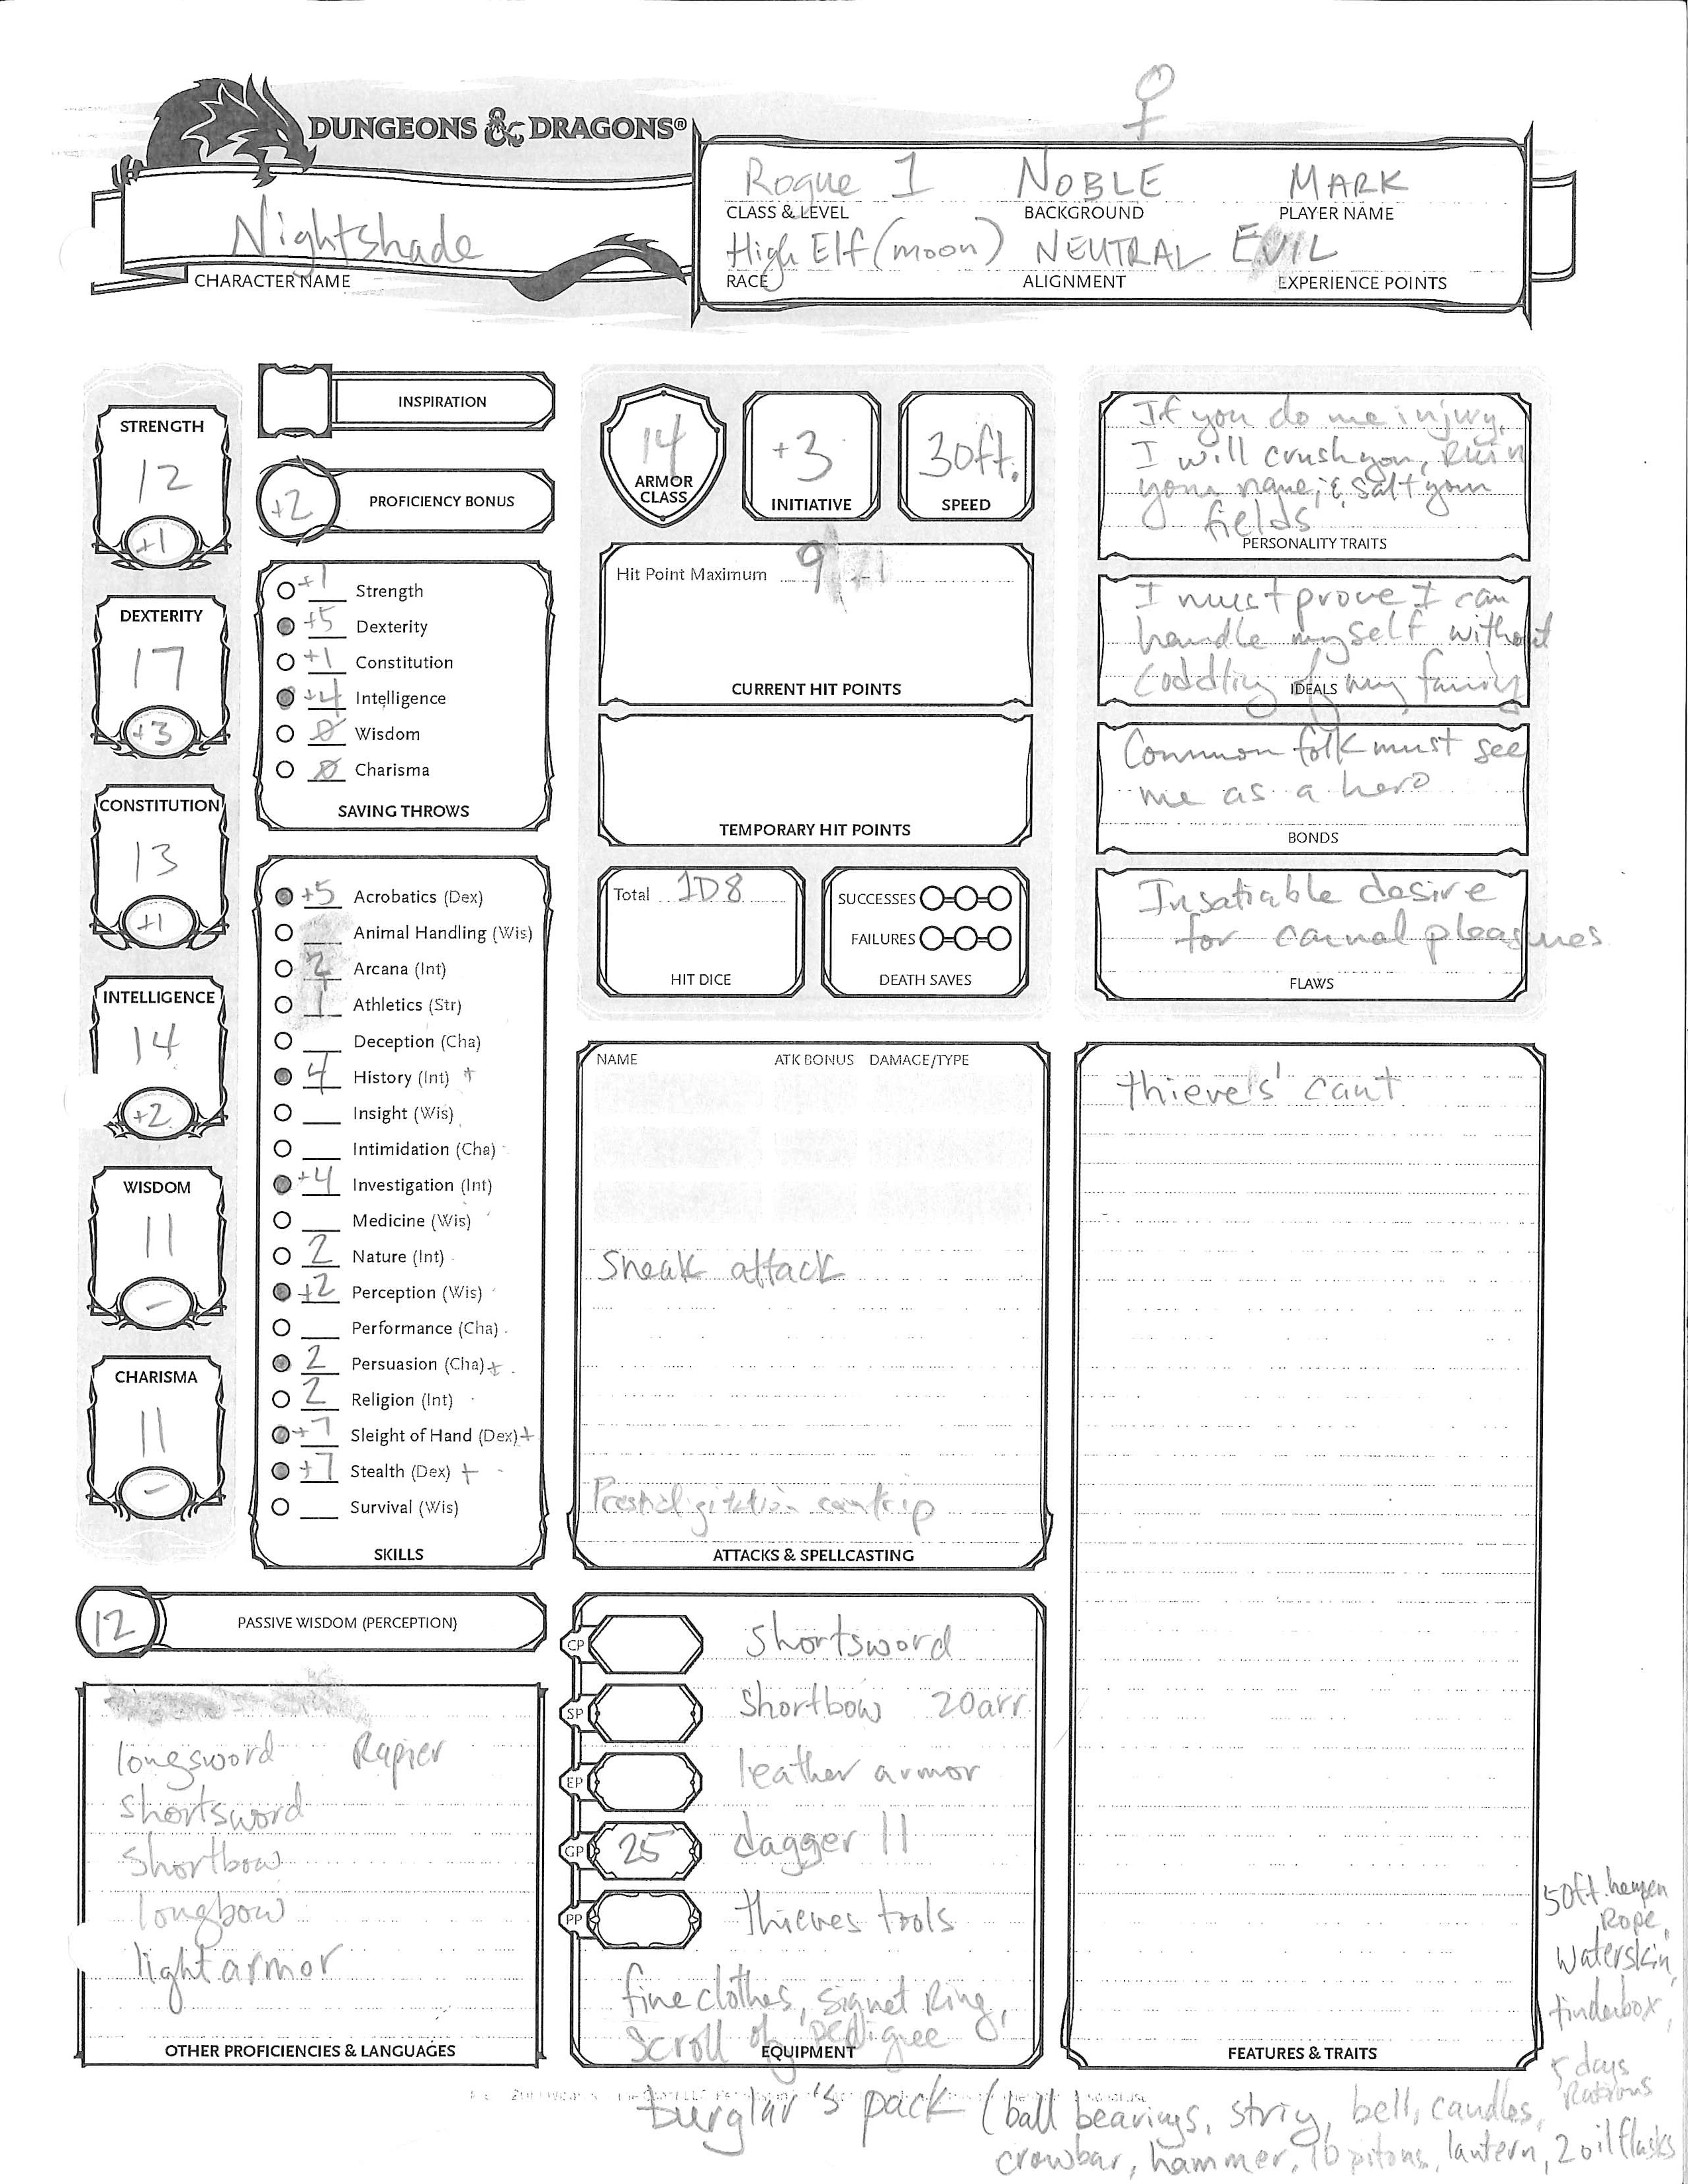 Nightshade_Character_Sheet_Scanned_-_2-page-0.jpg